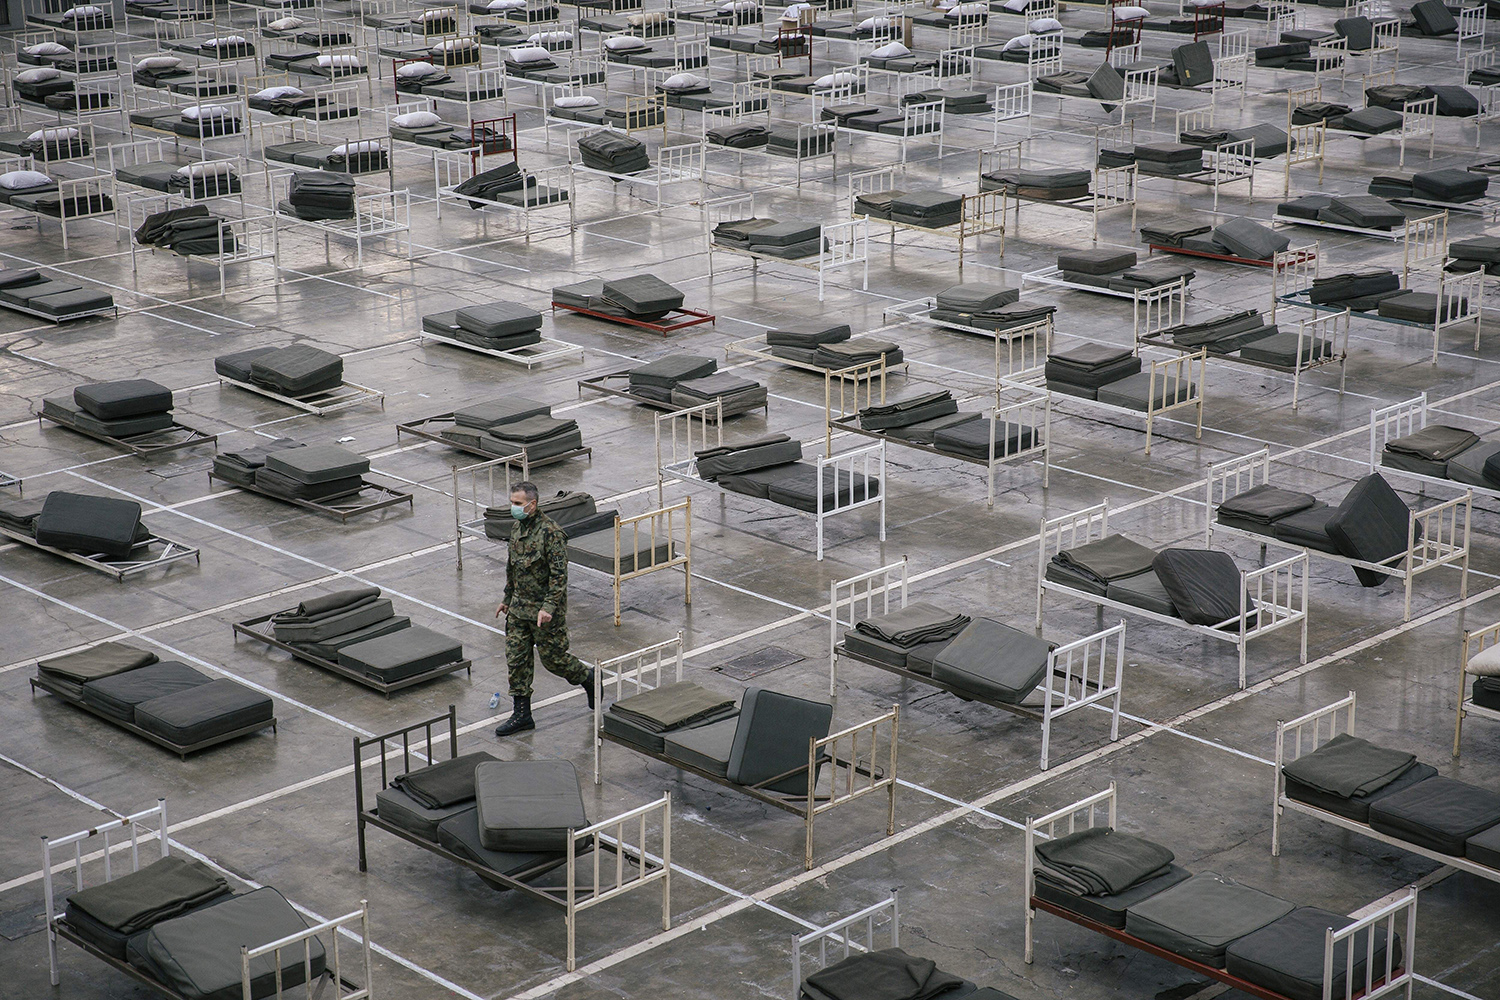 A Serbian member of the military walks March 24 among beds set up inside a hall at the Belgrade Fair to accommodate people suffering from mild symptoms of the coronavirus. VLADIMIR ZIVOJINOVIC/AFP via Getty Images